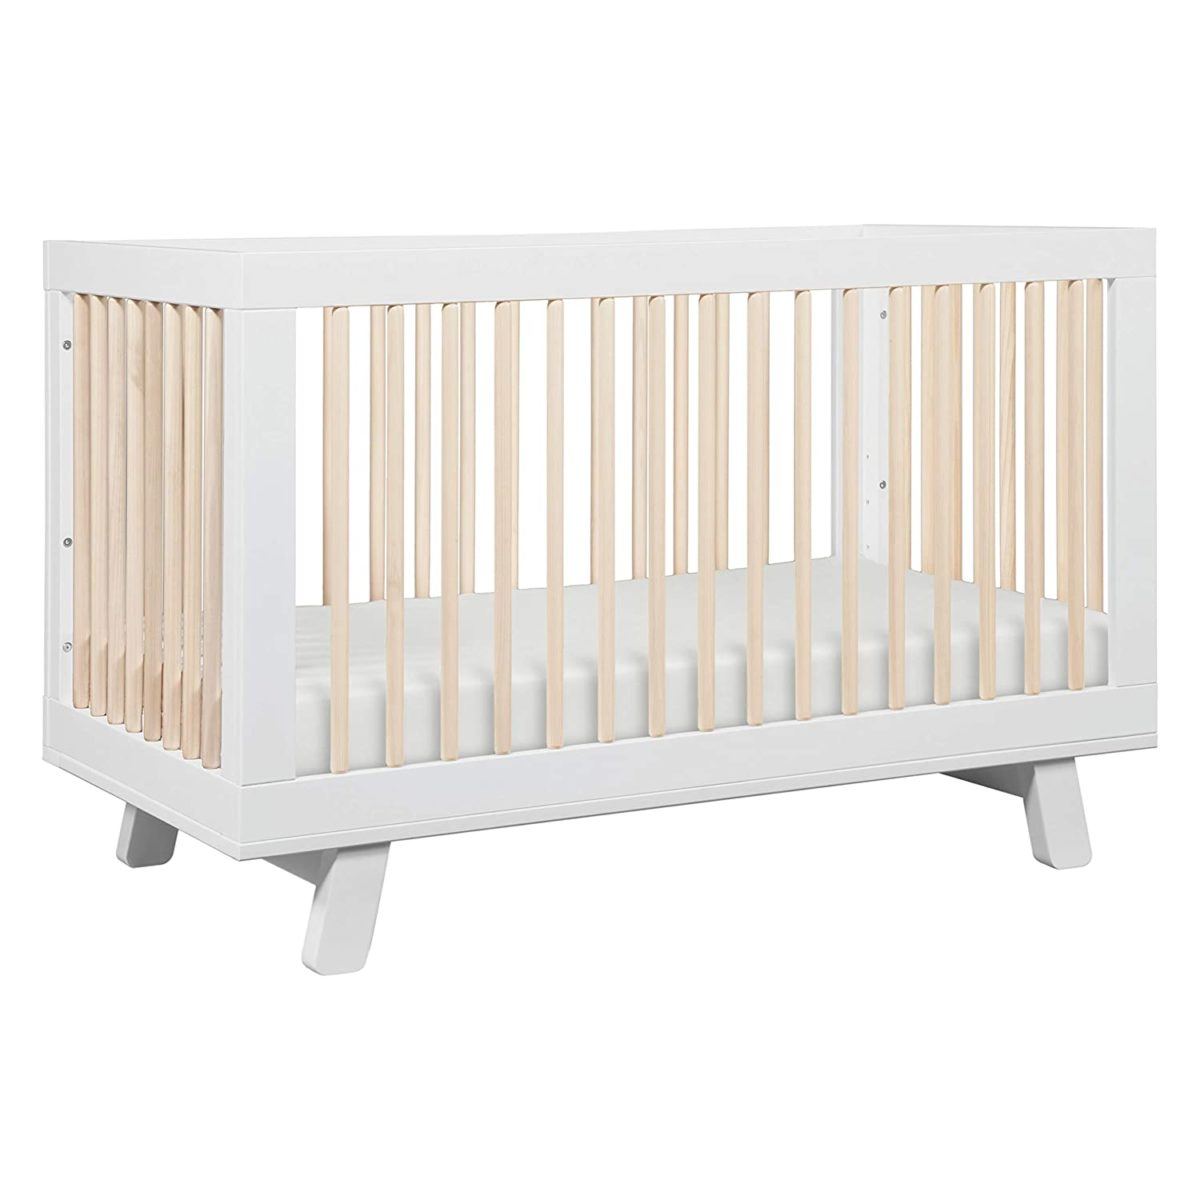 7 safe, yet stylish, cribs that are on the market | these seven cribs are once you can feel good about buying.